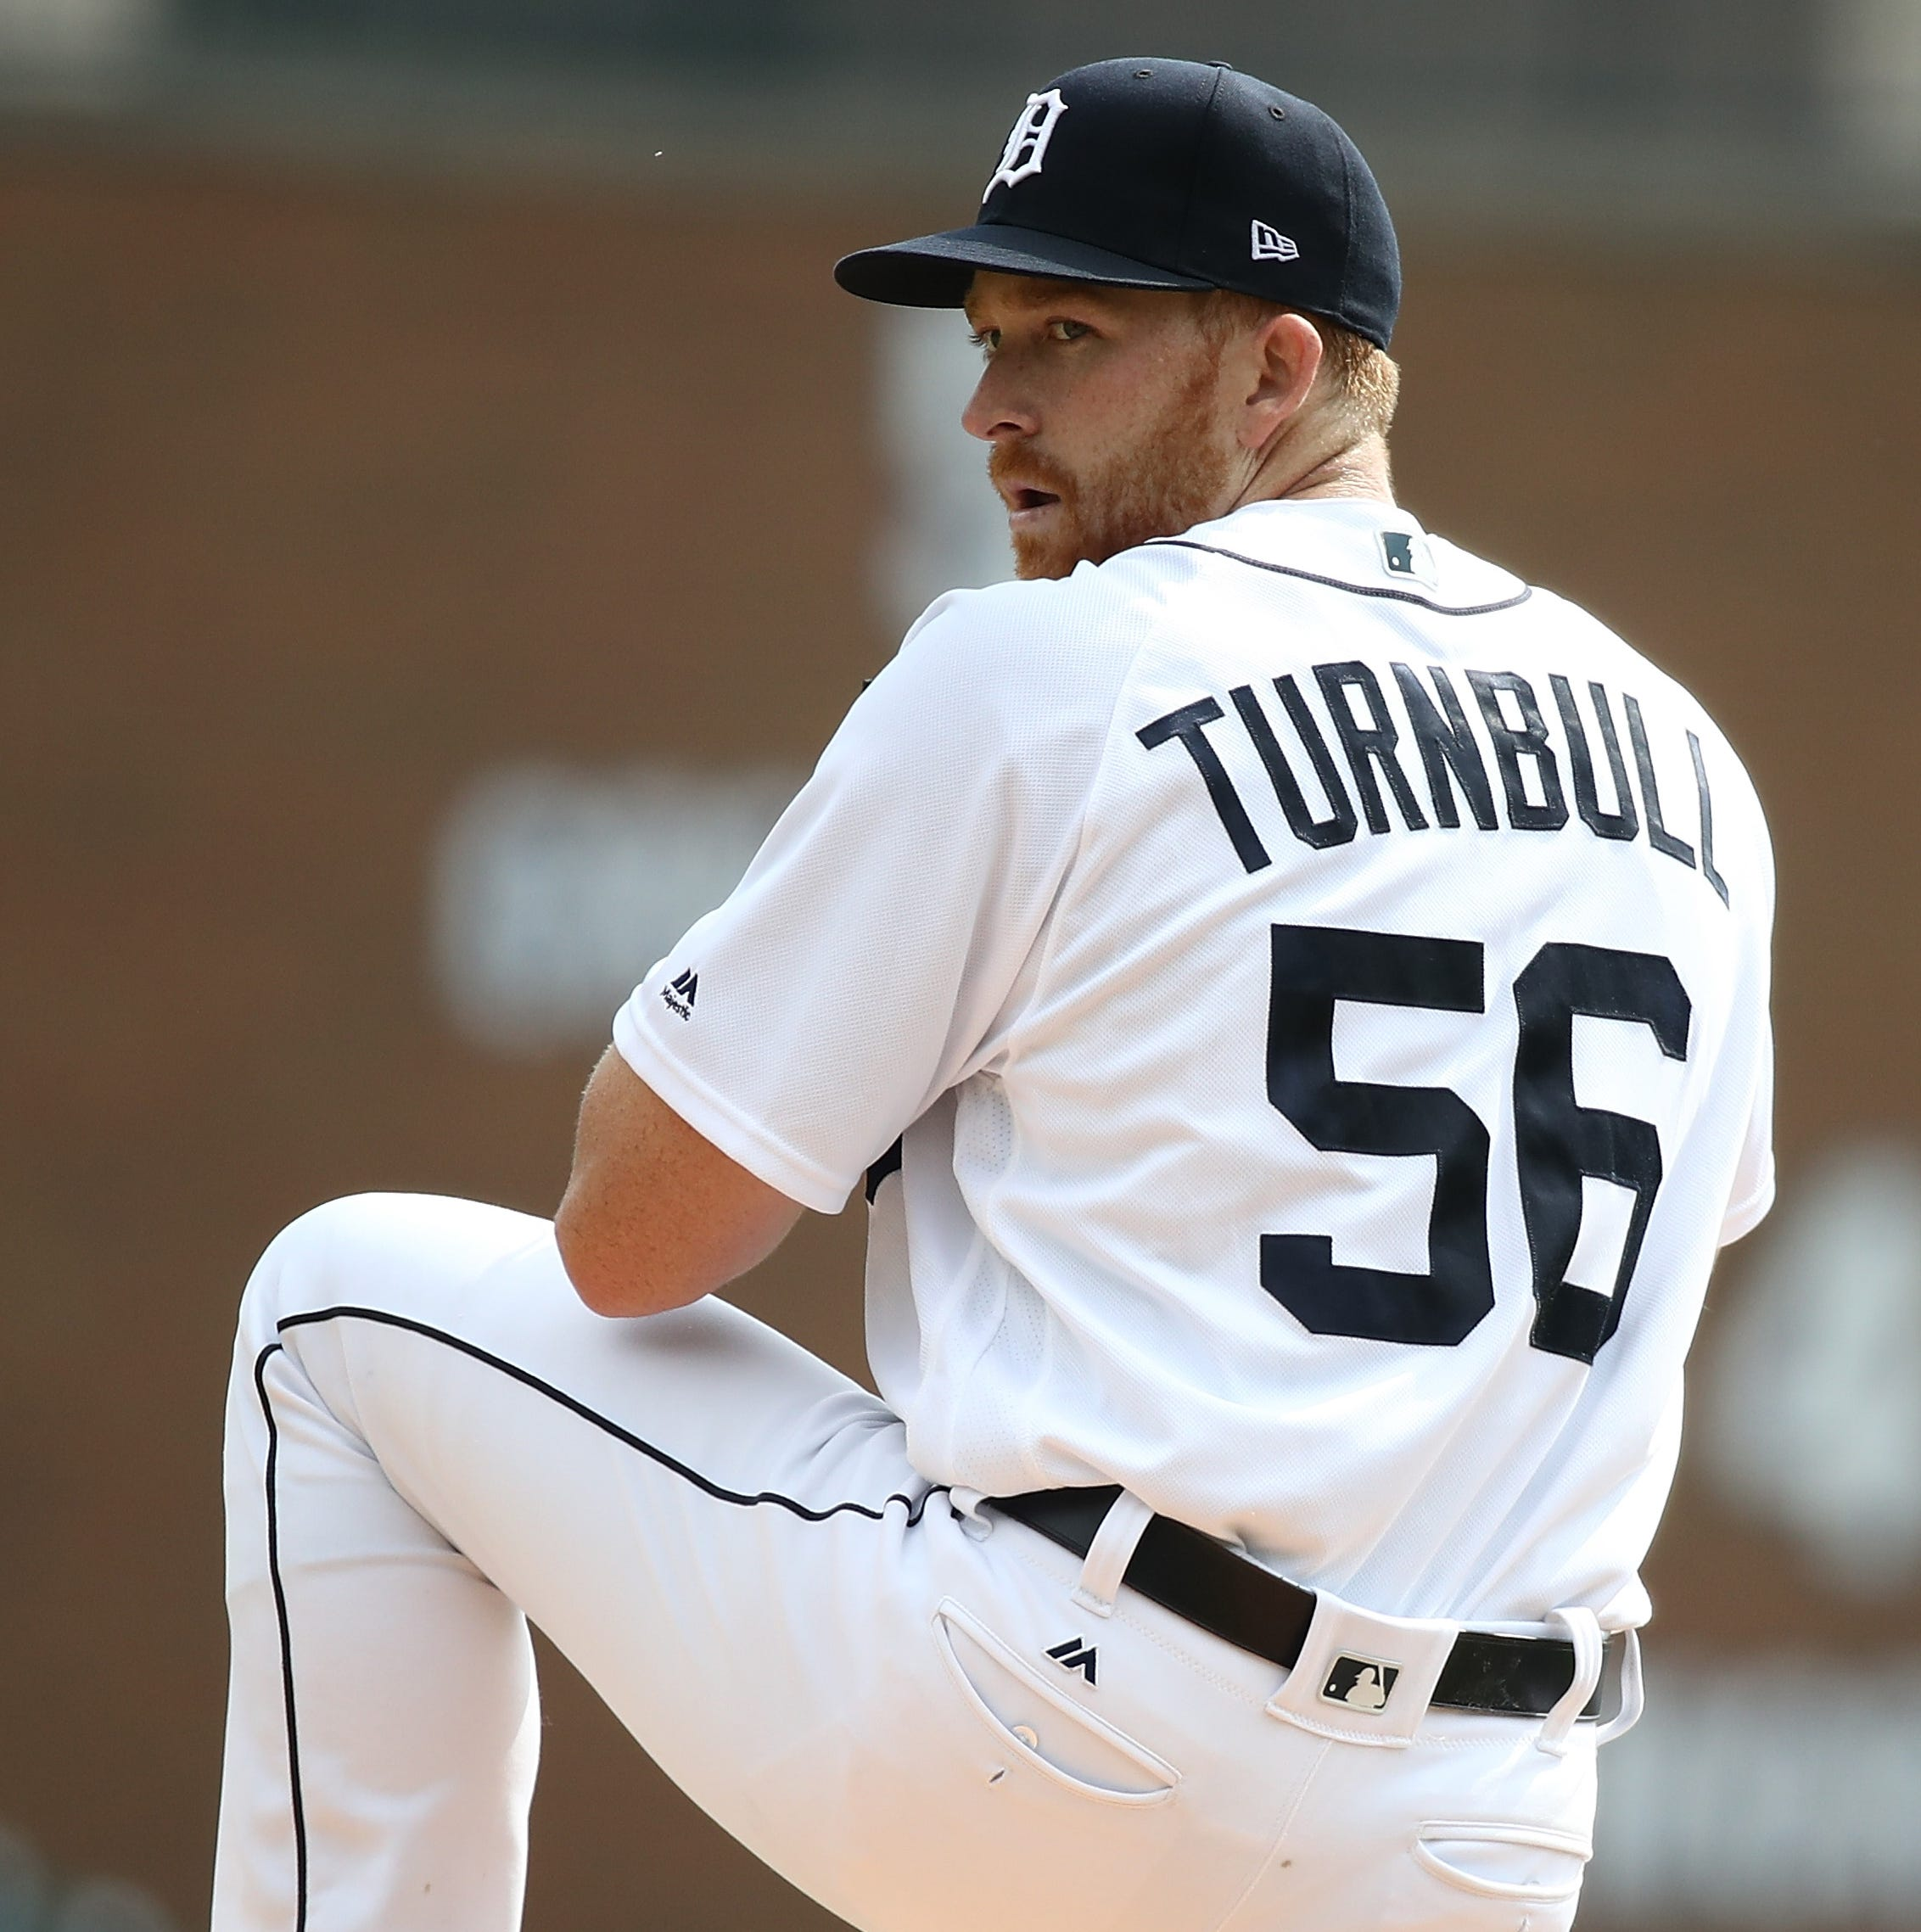 Detroit Tigers loses to Minnesota Twins, 8-2